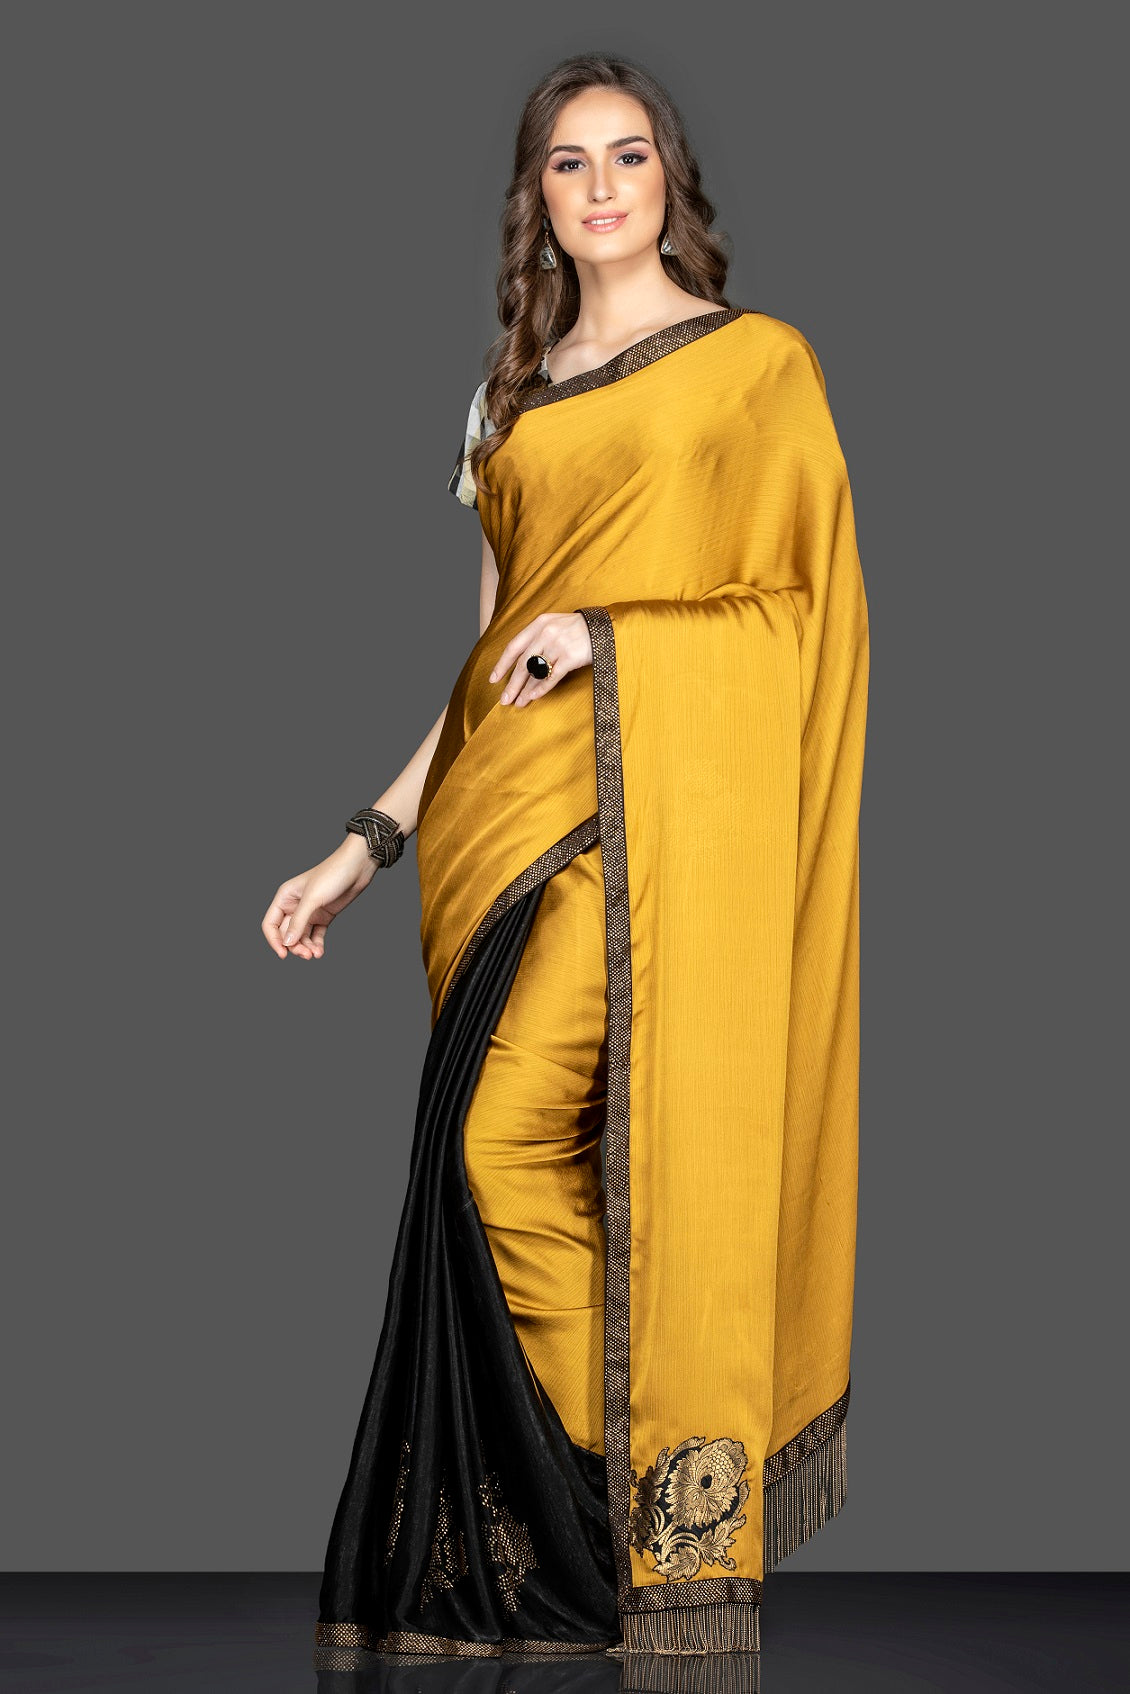 Shop beautiful mustard and black embroidered sari online in USA with designer sari blouse. Elevate your sartorial choice with exclusive Indian designer saris with blouse, embroidered sarees, pure silk sarees from Pure Elegance Indian fashion store in USA.-full view